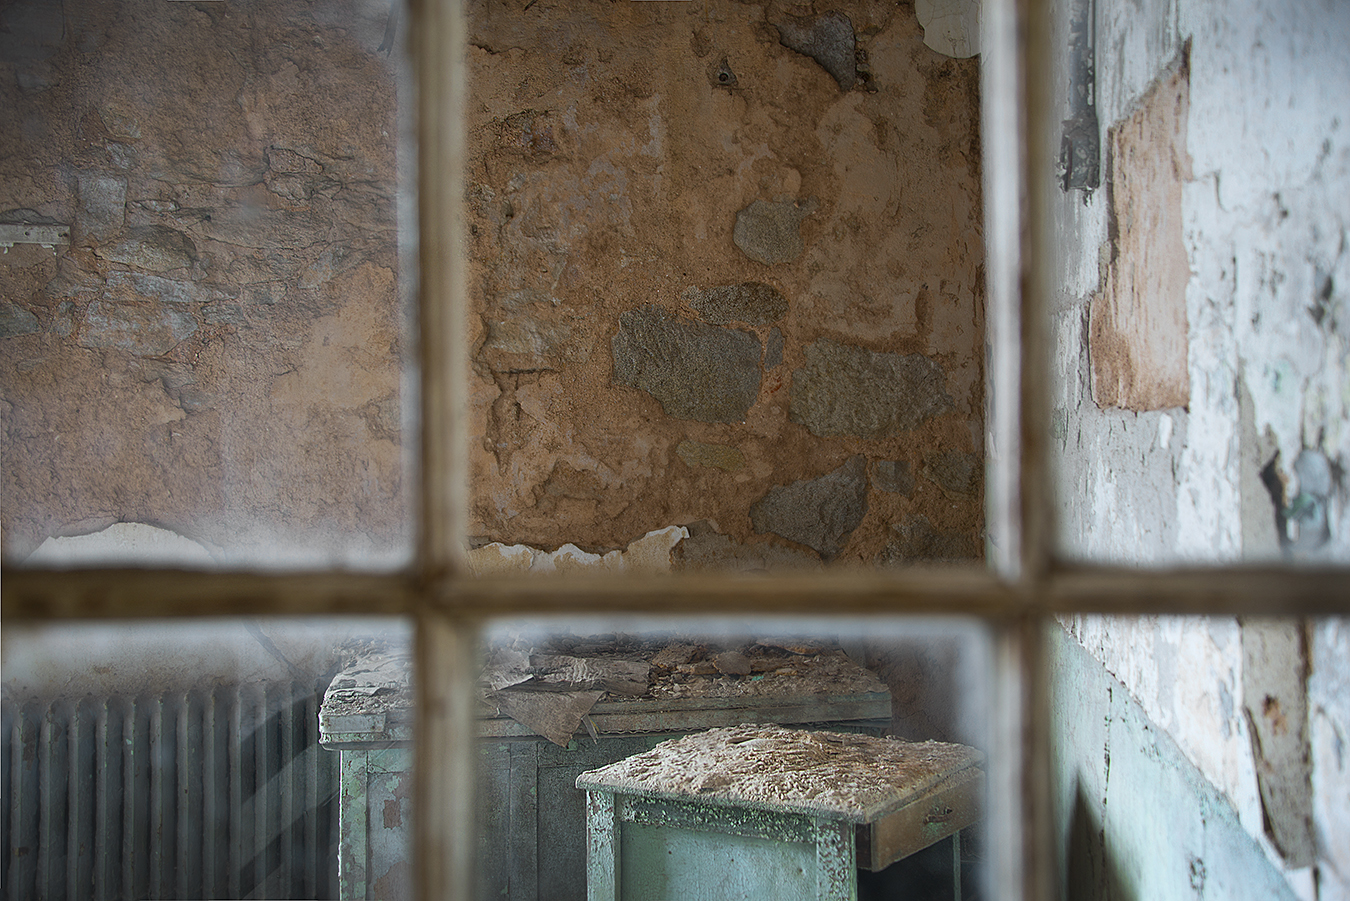 Zoe_Photography_EasternStatePenitentiary_Philadelphia_TheLostPast_TheGrid_Window_BrokenMemeory